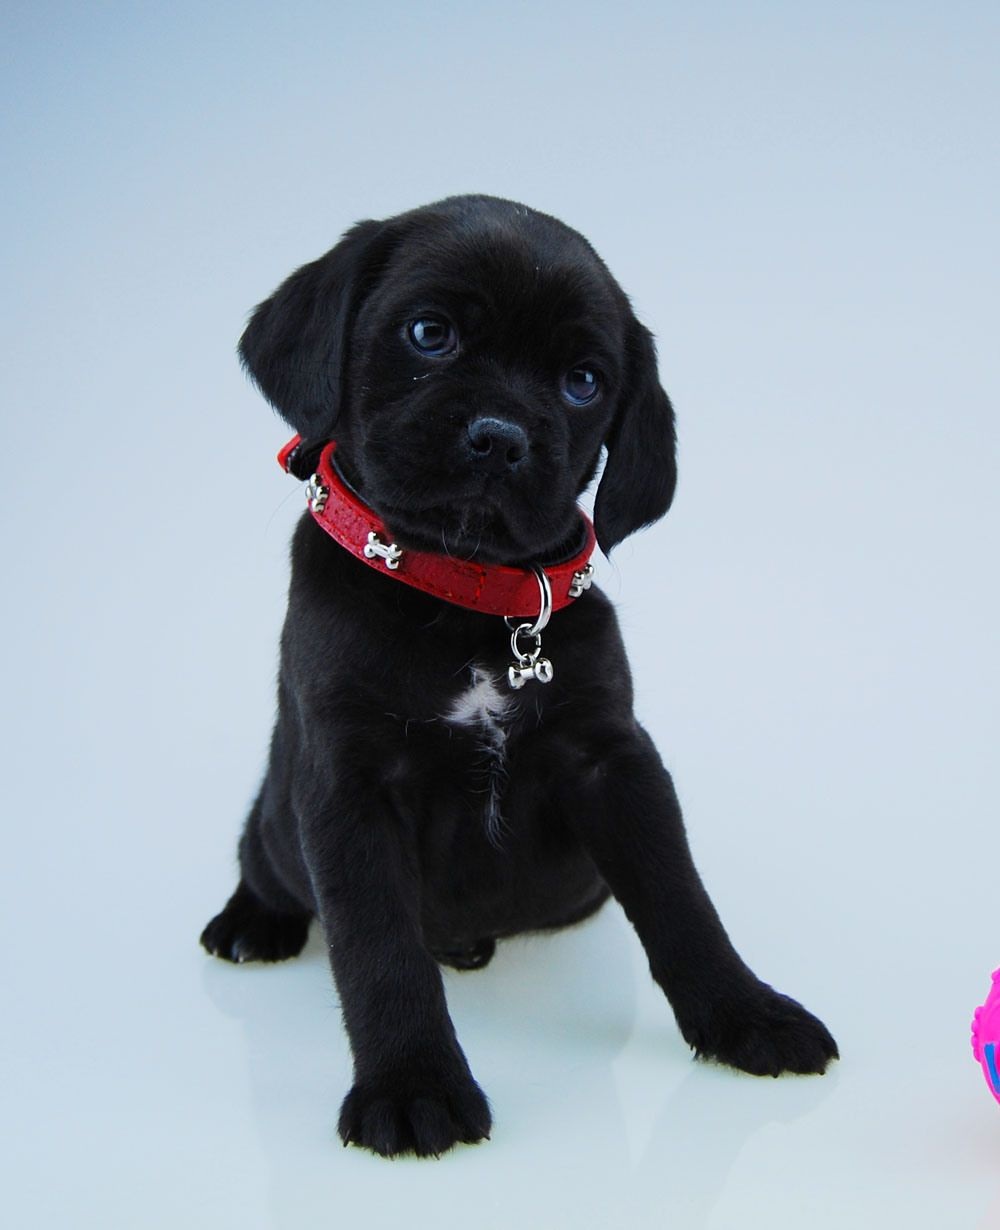 Curious black Puggle puppy   Just for Fun   Pinterest ...